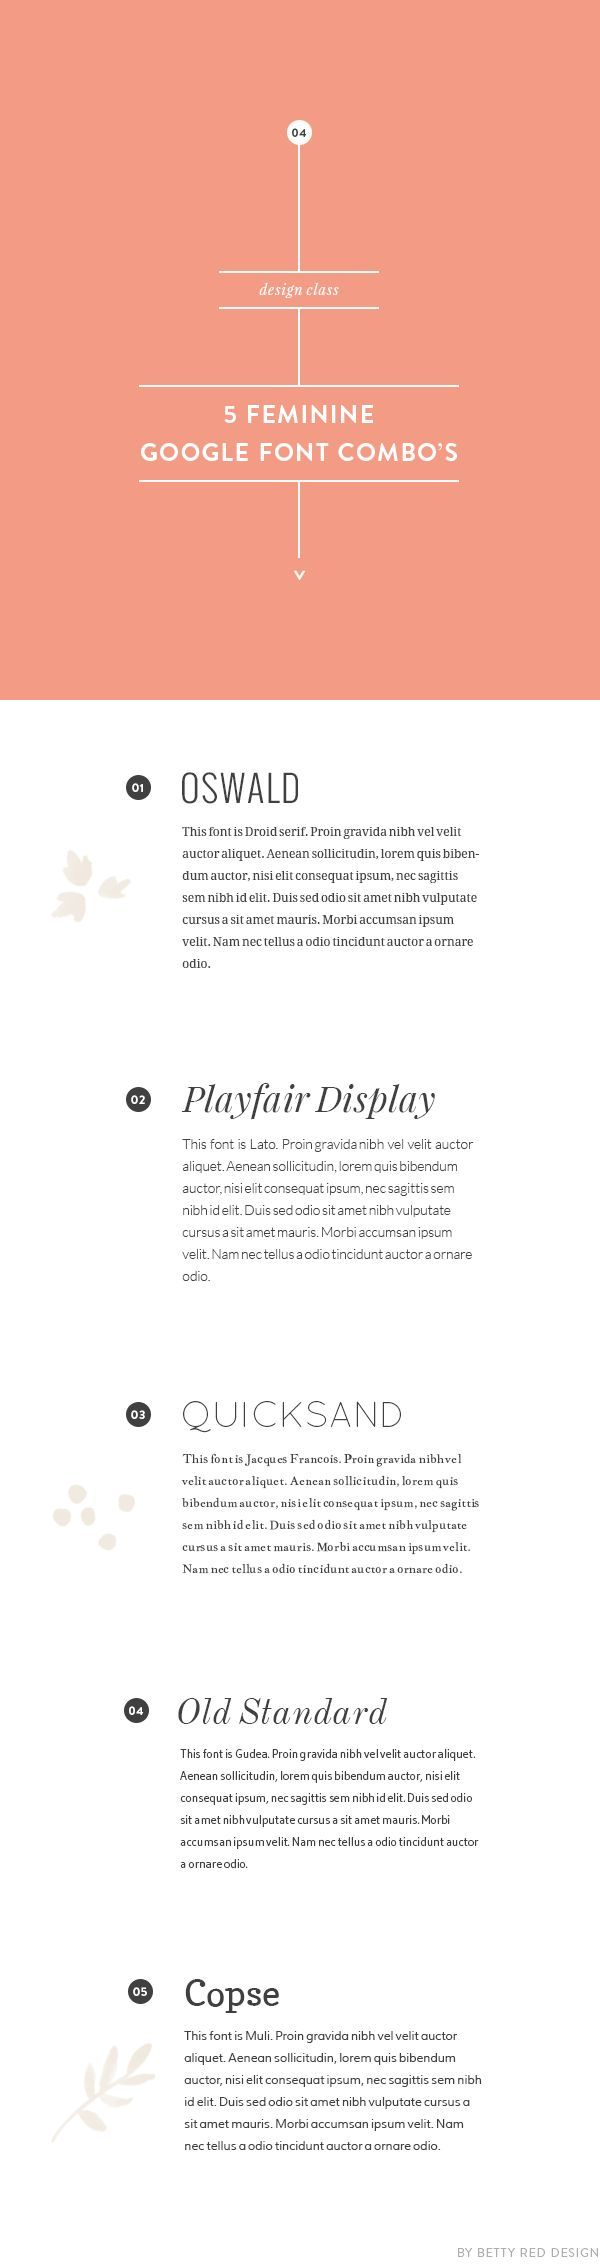 Whether you're a designer like me, or anything from a blogger to a small business owner, we all sometimes struggle when pairing fonts. That's why I quickly put these fonts together today! They're ...